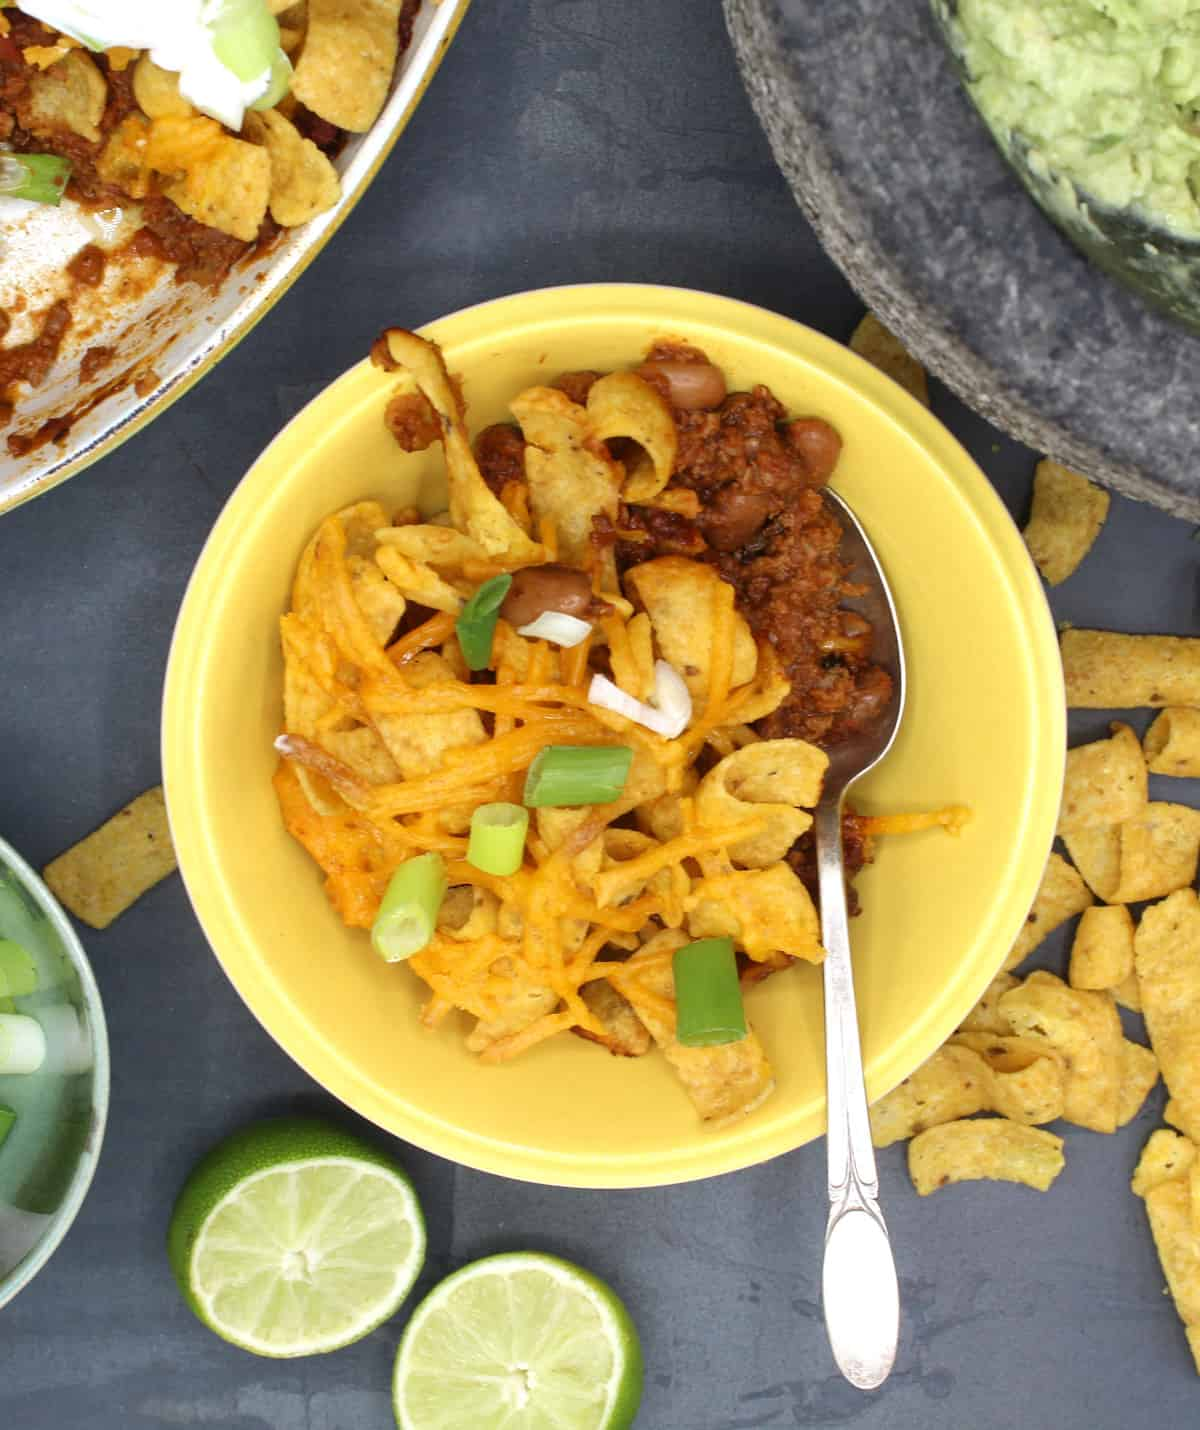 Vegan Frito Pie in a yellow bowl with guacamole and limes.